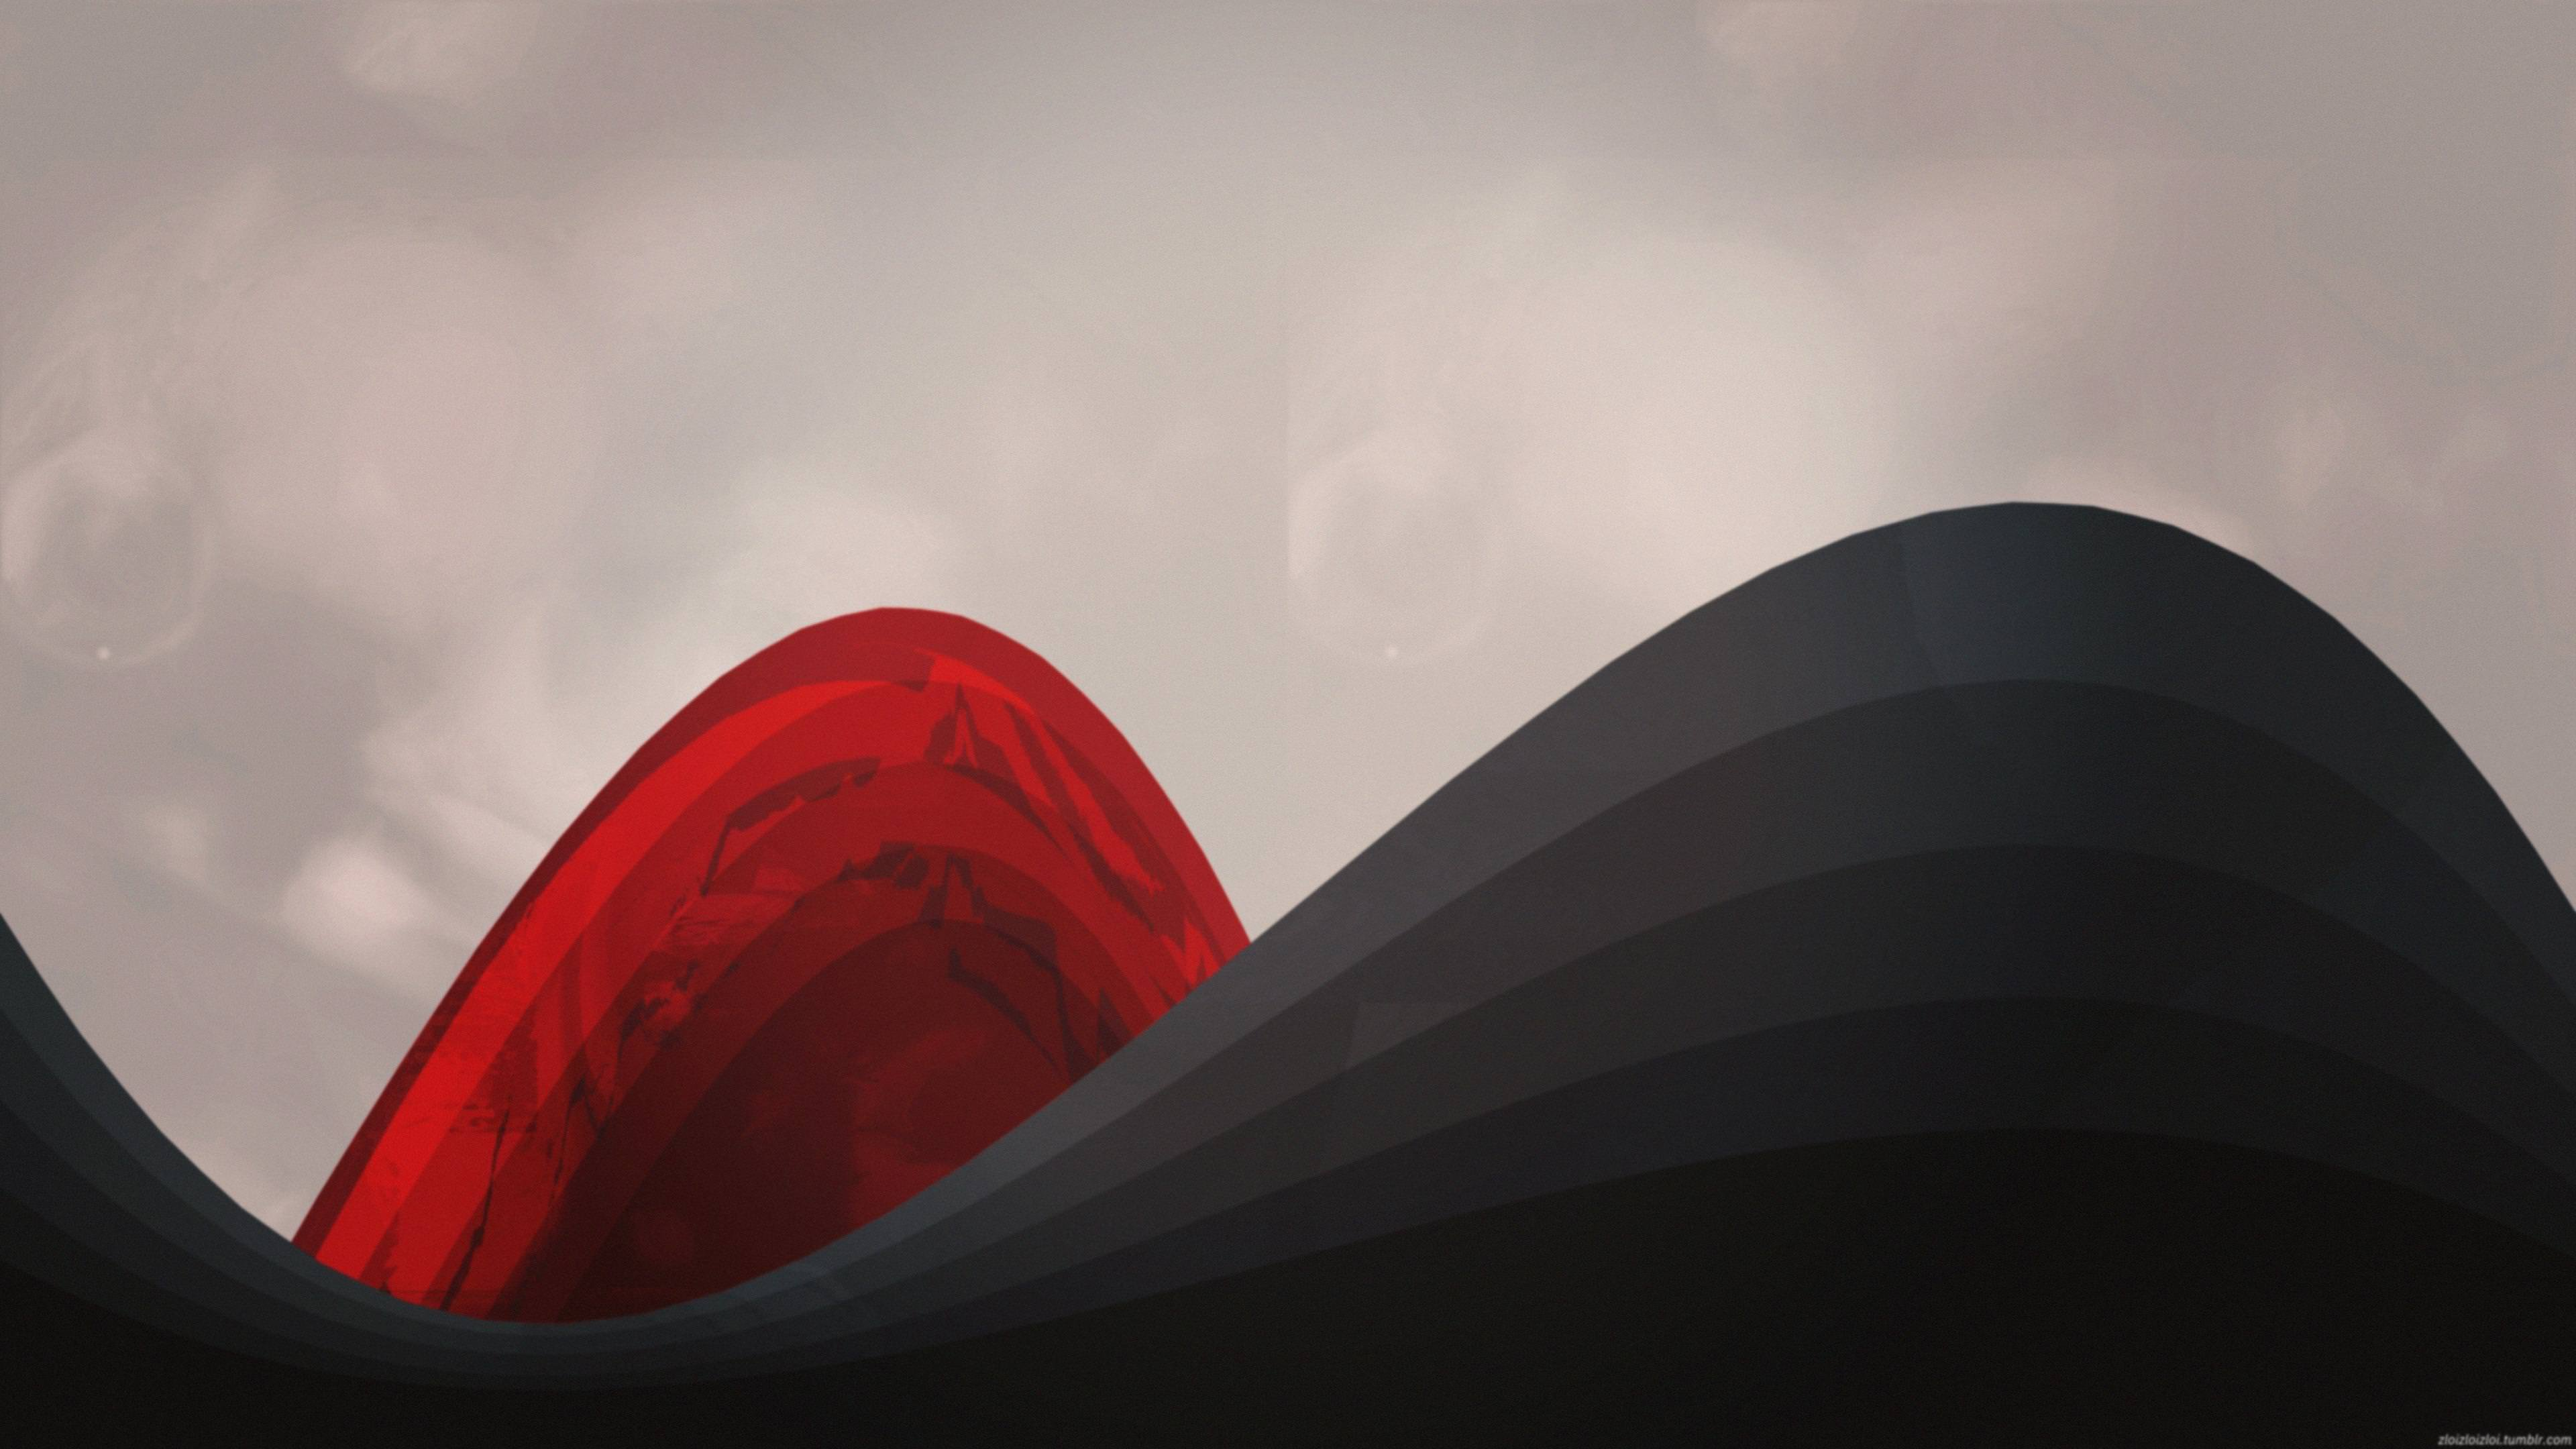 Abstract Minimalism Red And Black 4k Wallpaper